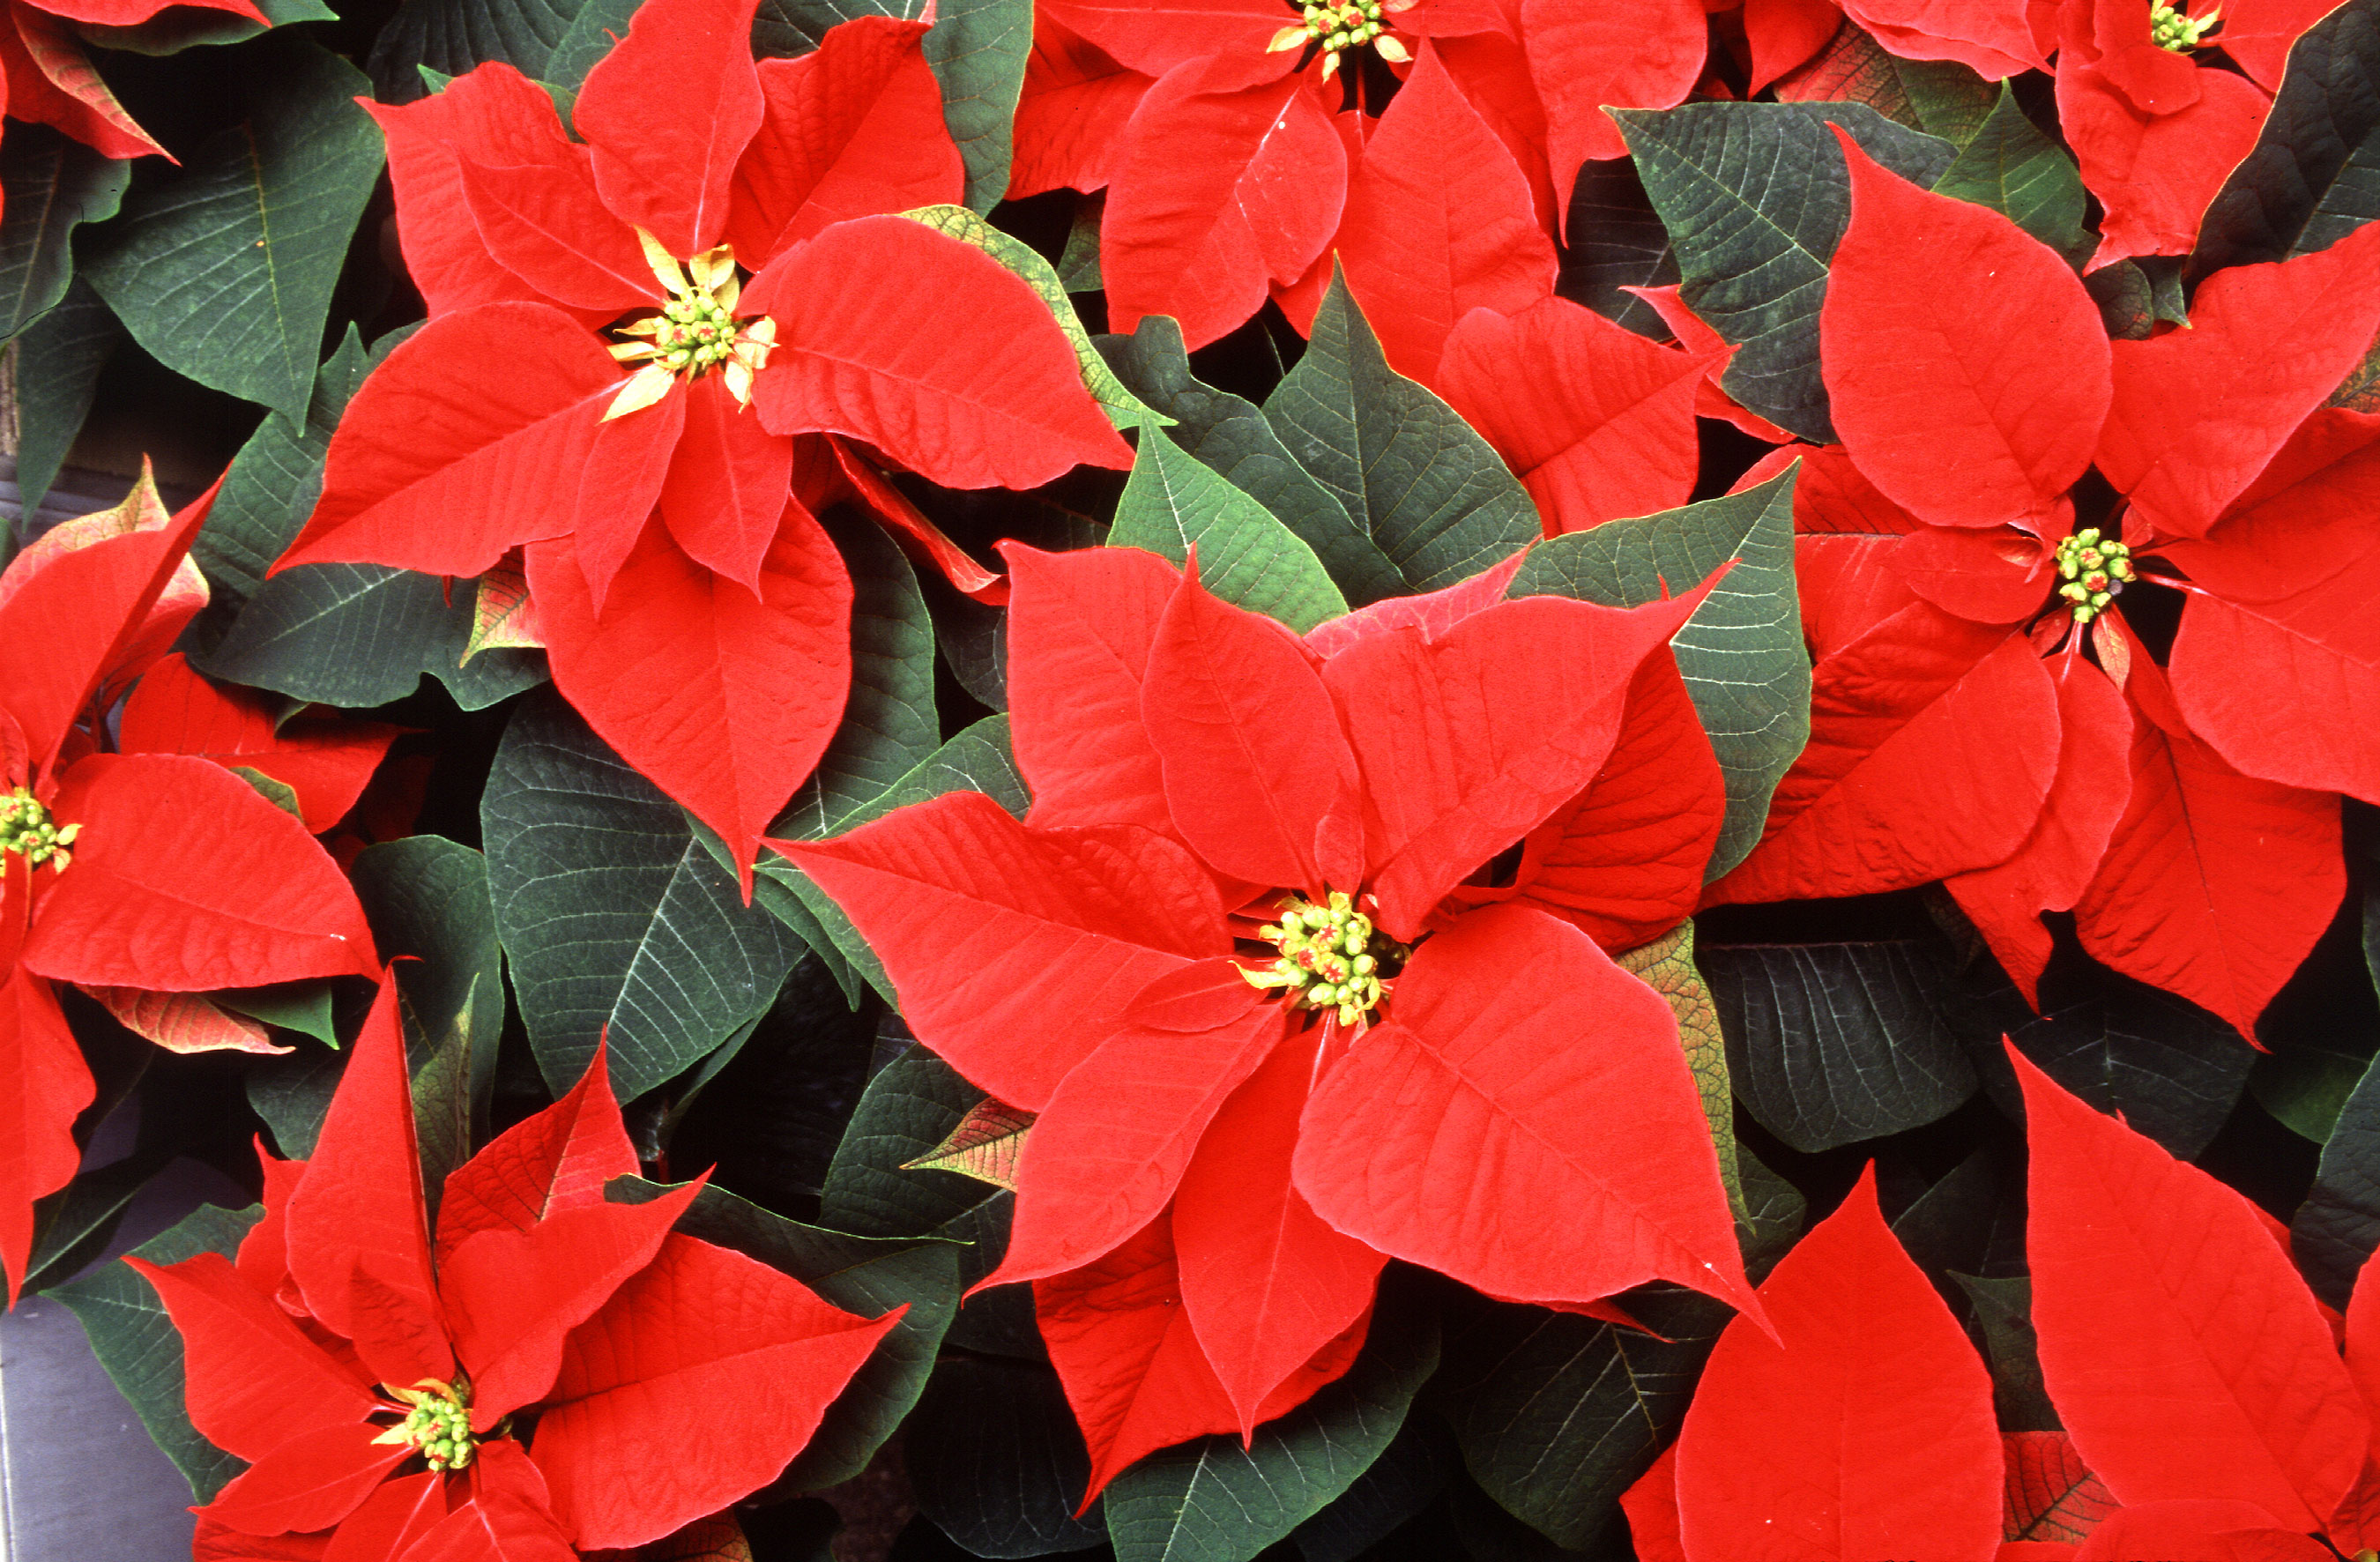 File:Poinsettia 2.jpg - Wikipedia